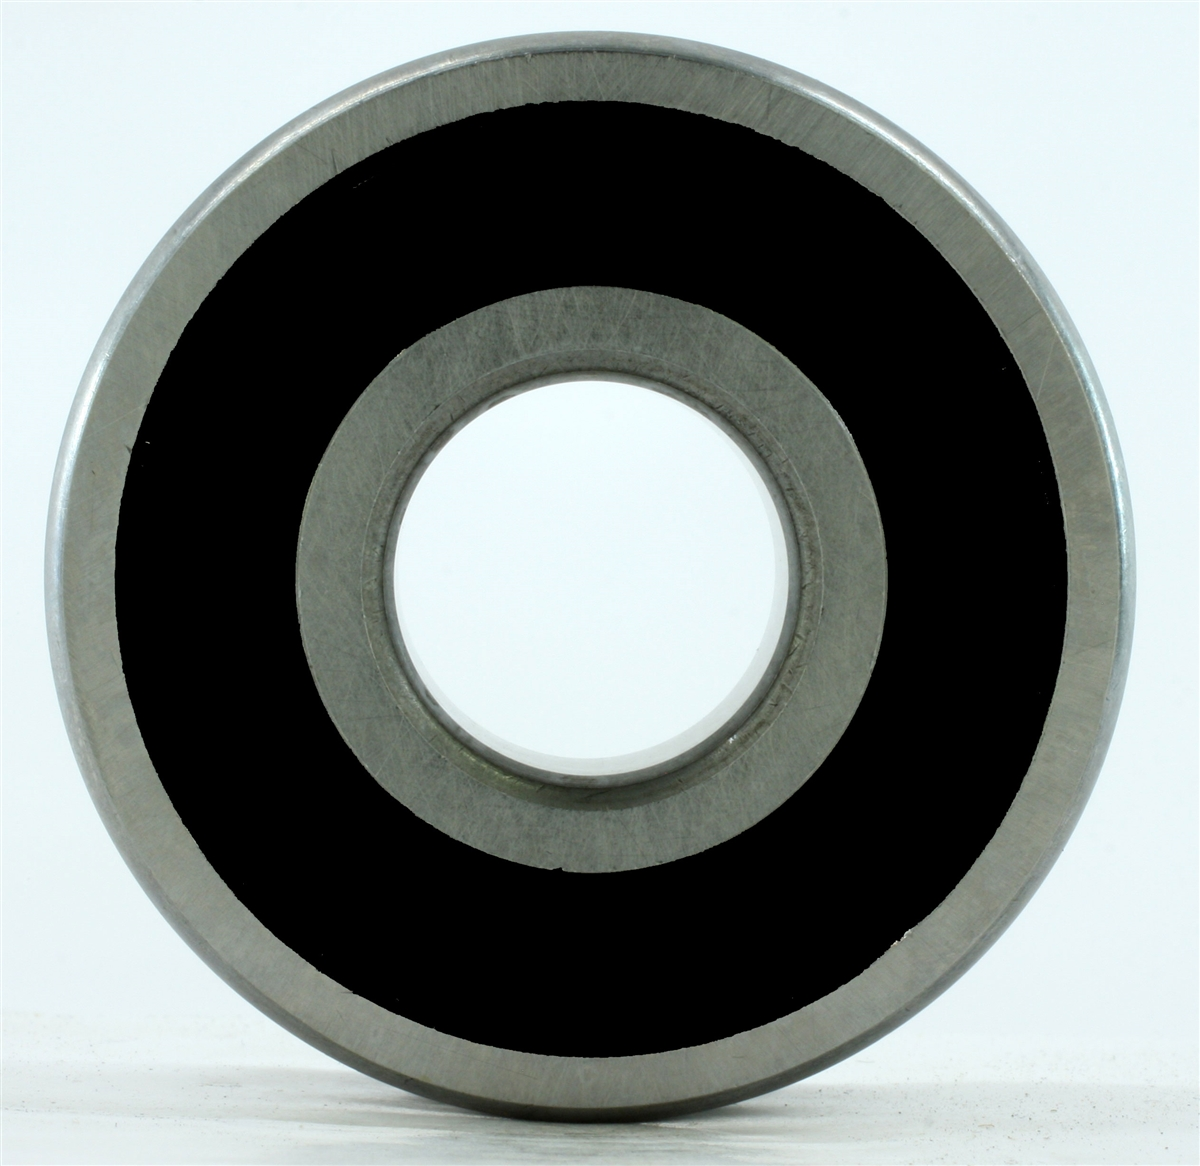 S6900-2RS Bearing 10x22x6 Si3N4 Ceramic:Stainless:Sealed:vxb:Ball Bearing